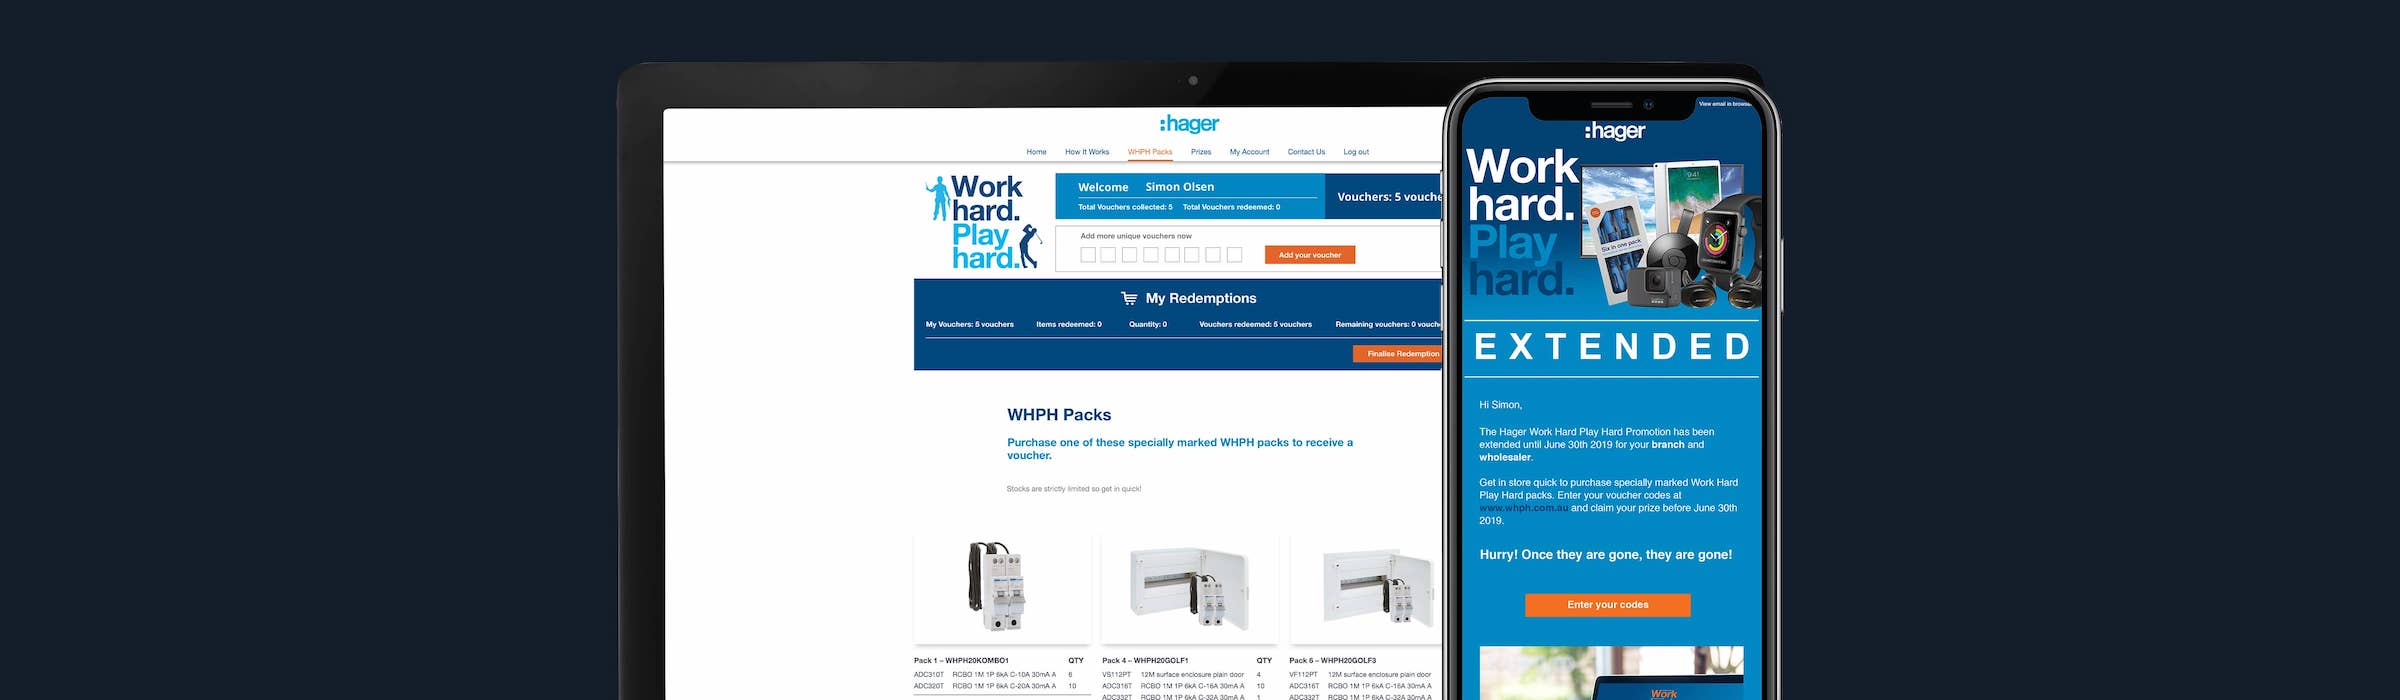 Hager promotion on laptop and phone screens